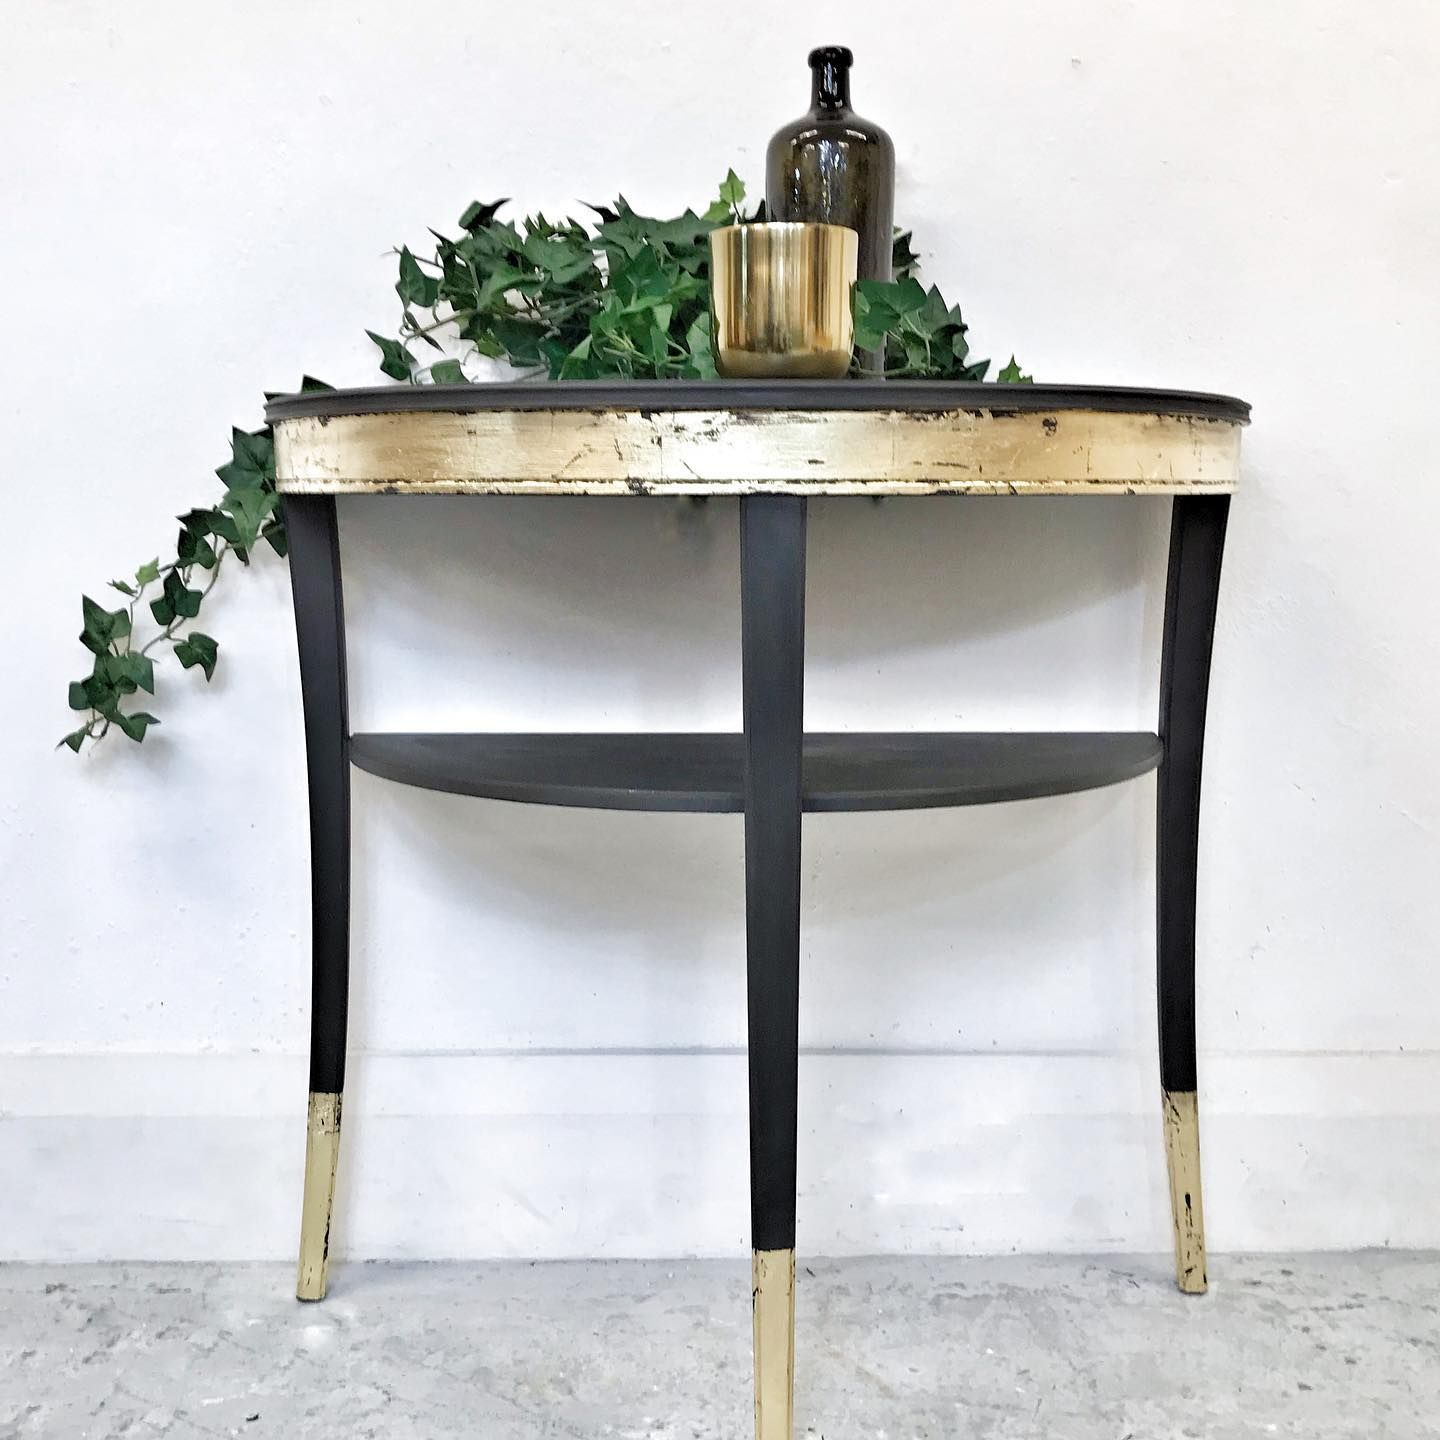 Legate furniture – hand painted half moon console table with shelf in Graphite and Gold Leaf | nuMONDAY